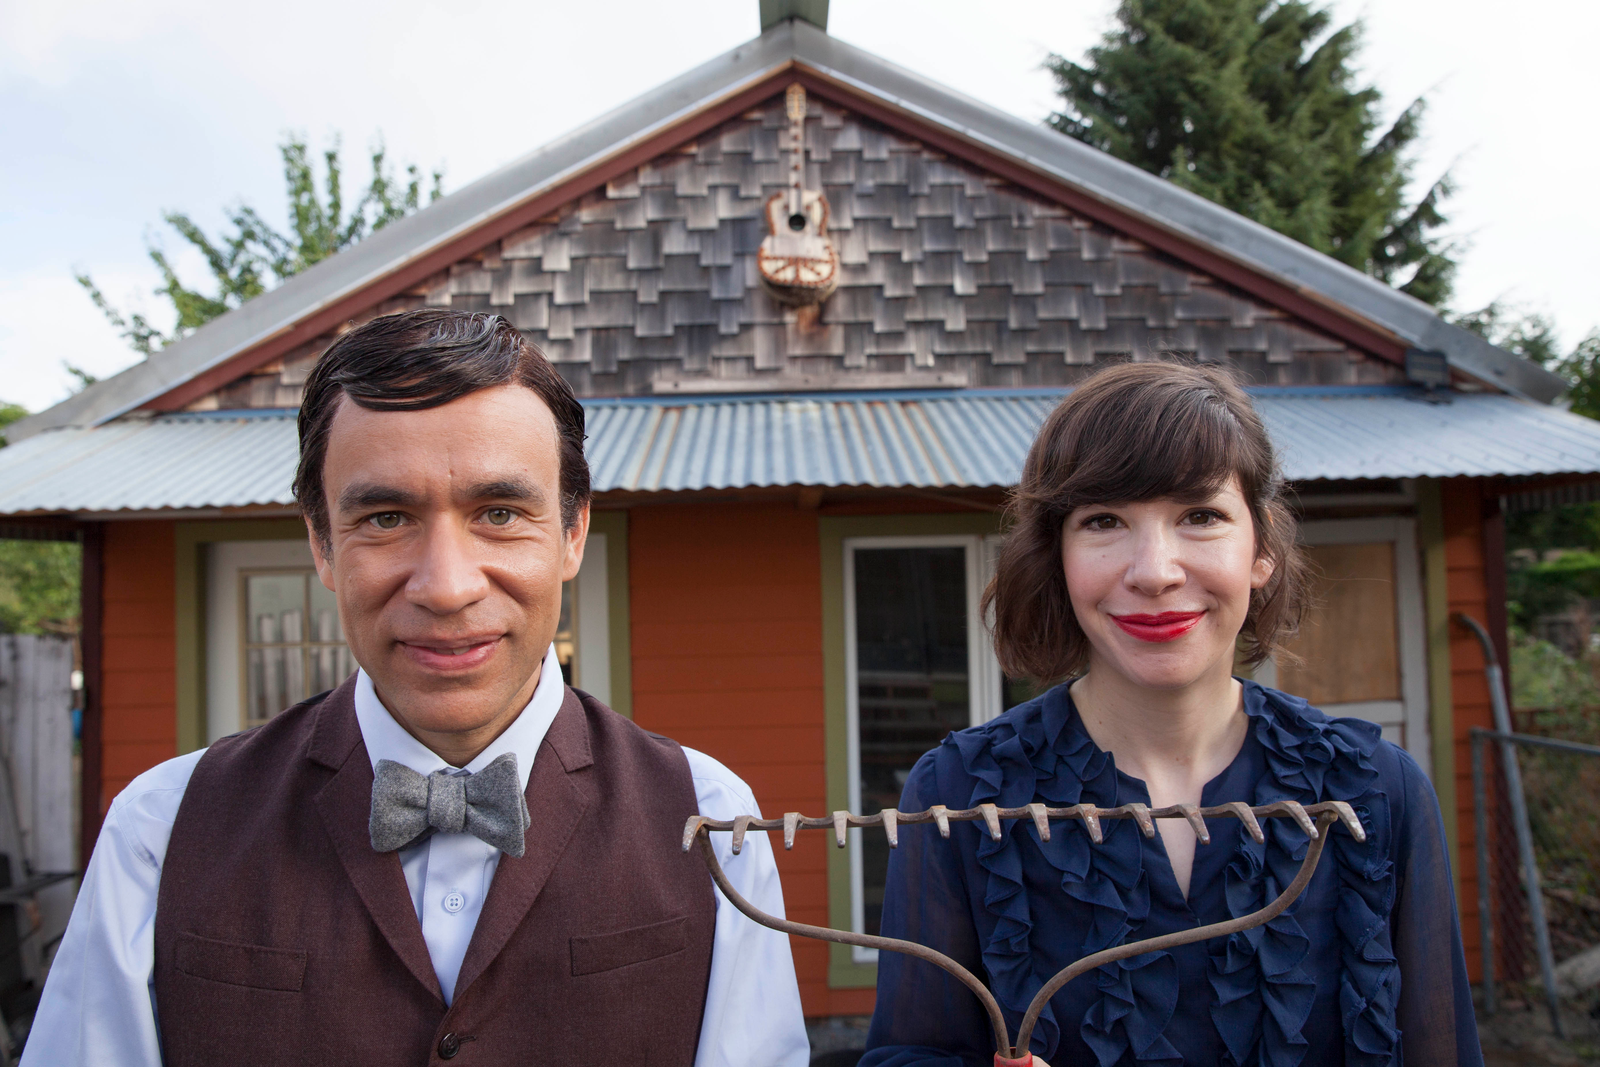 Fred Armisen and Carrie Brownstein in Portlandia. (photo: Chris Hornbecker/IFC)